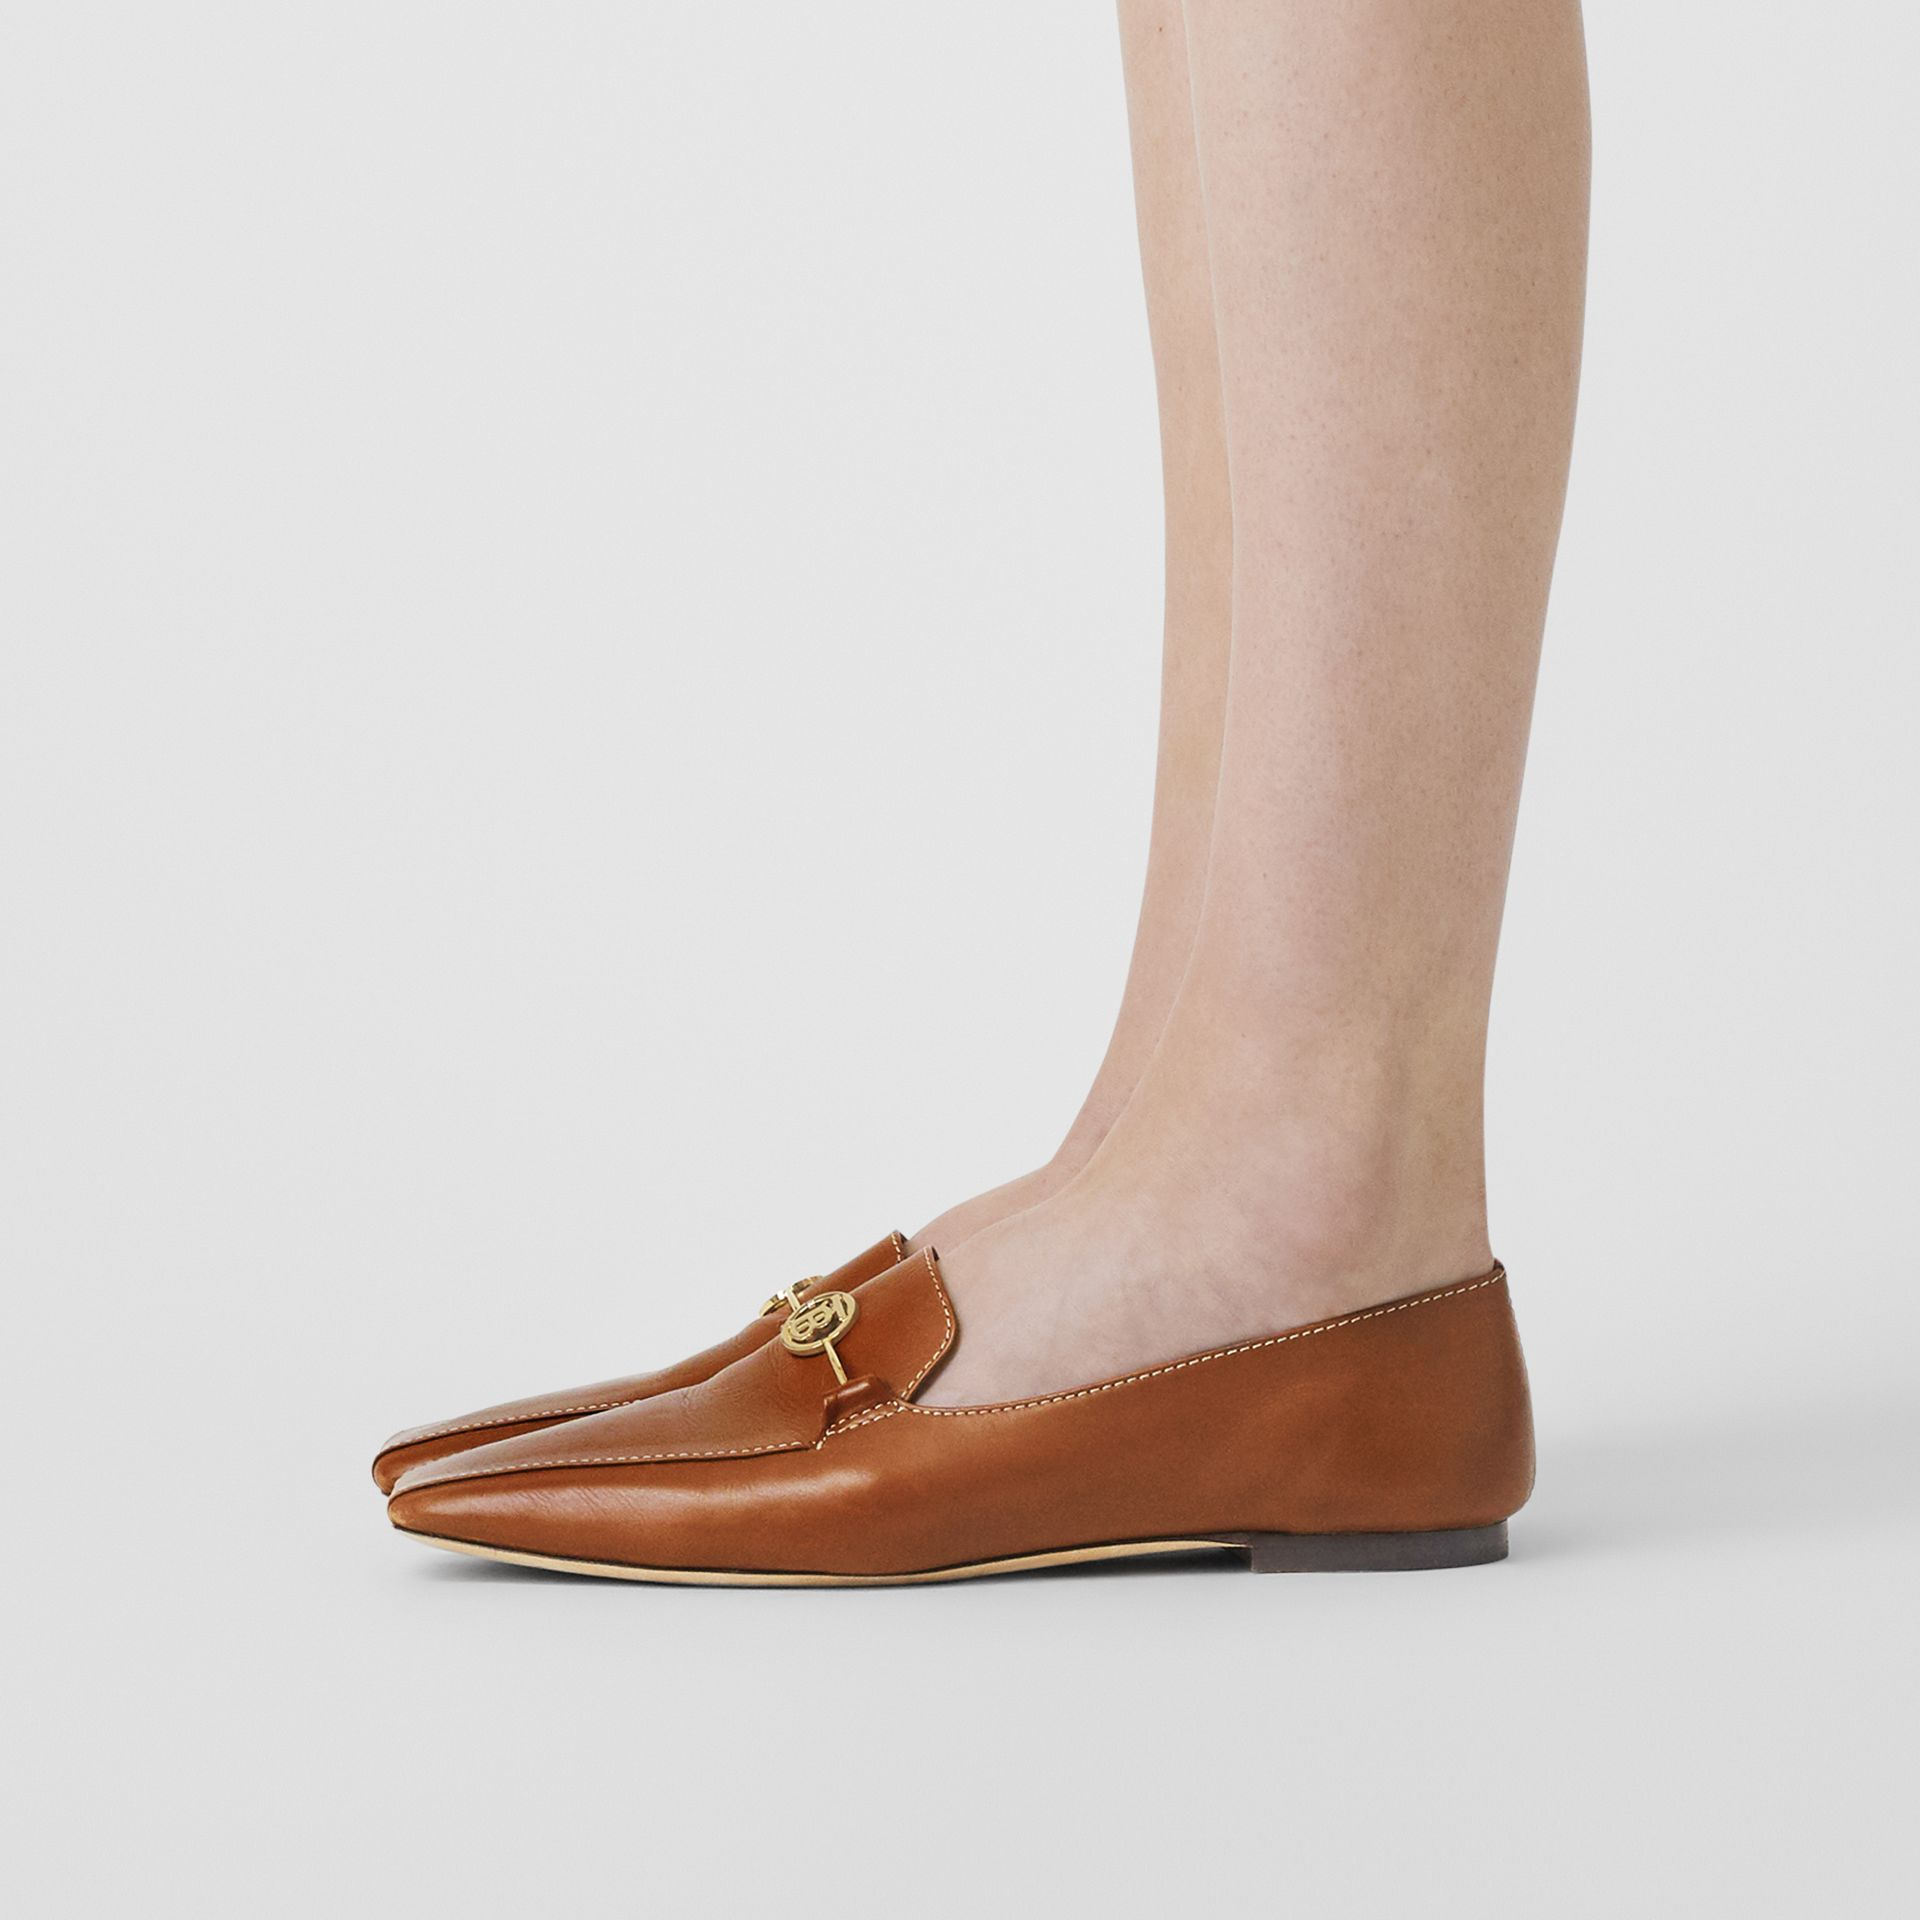 Monogram Motif Leather Loafers in Tan - Women | Burberry United States - gallery image 2